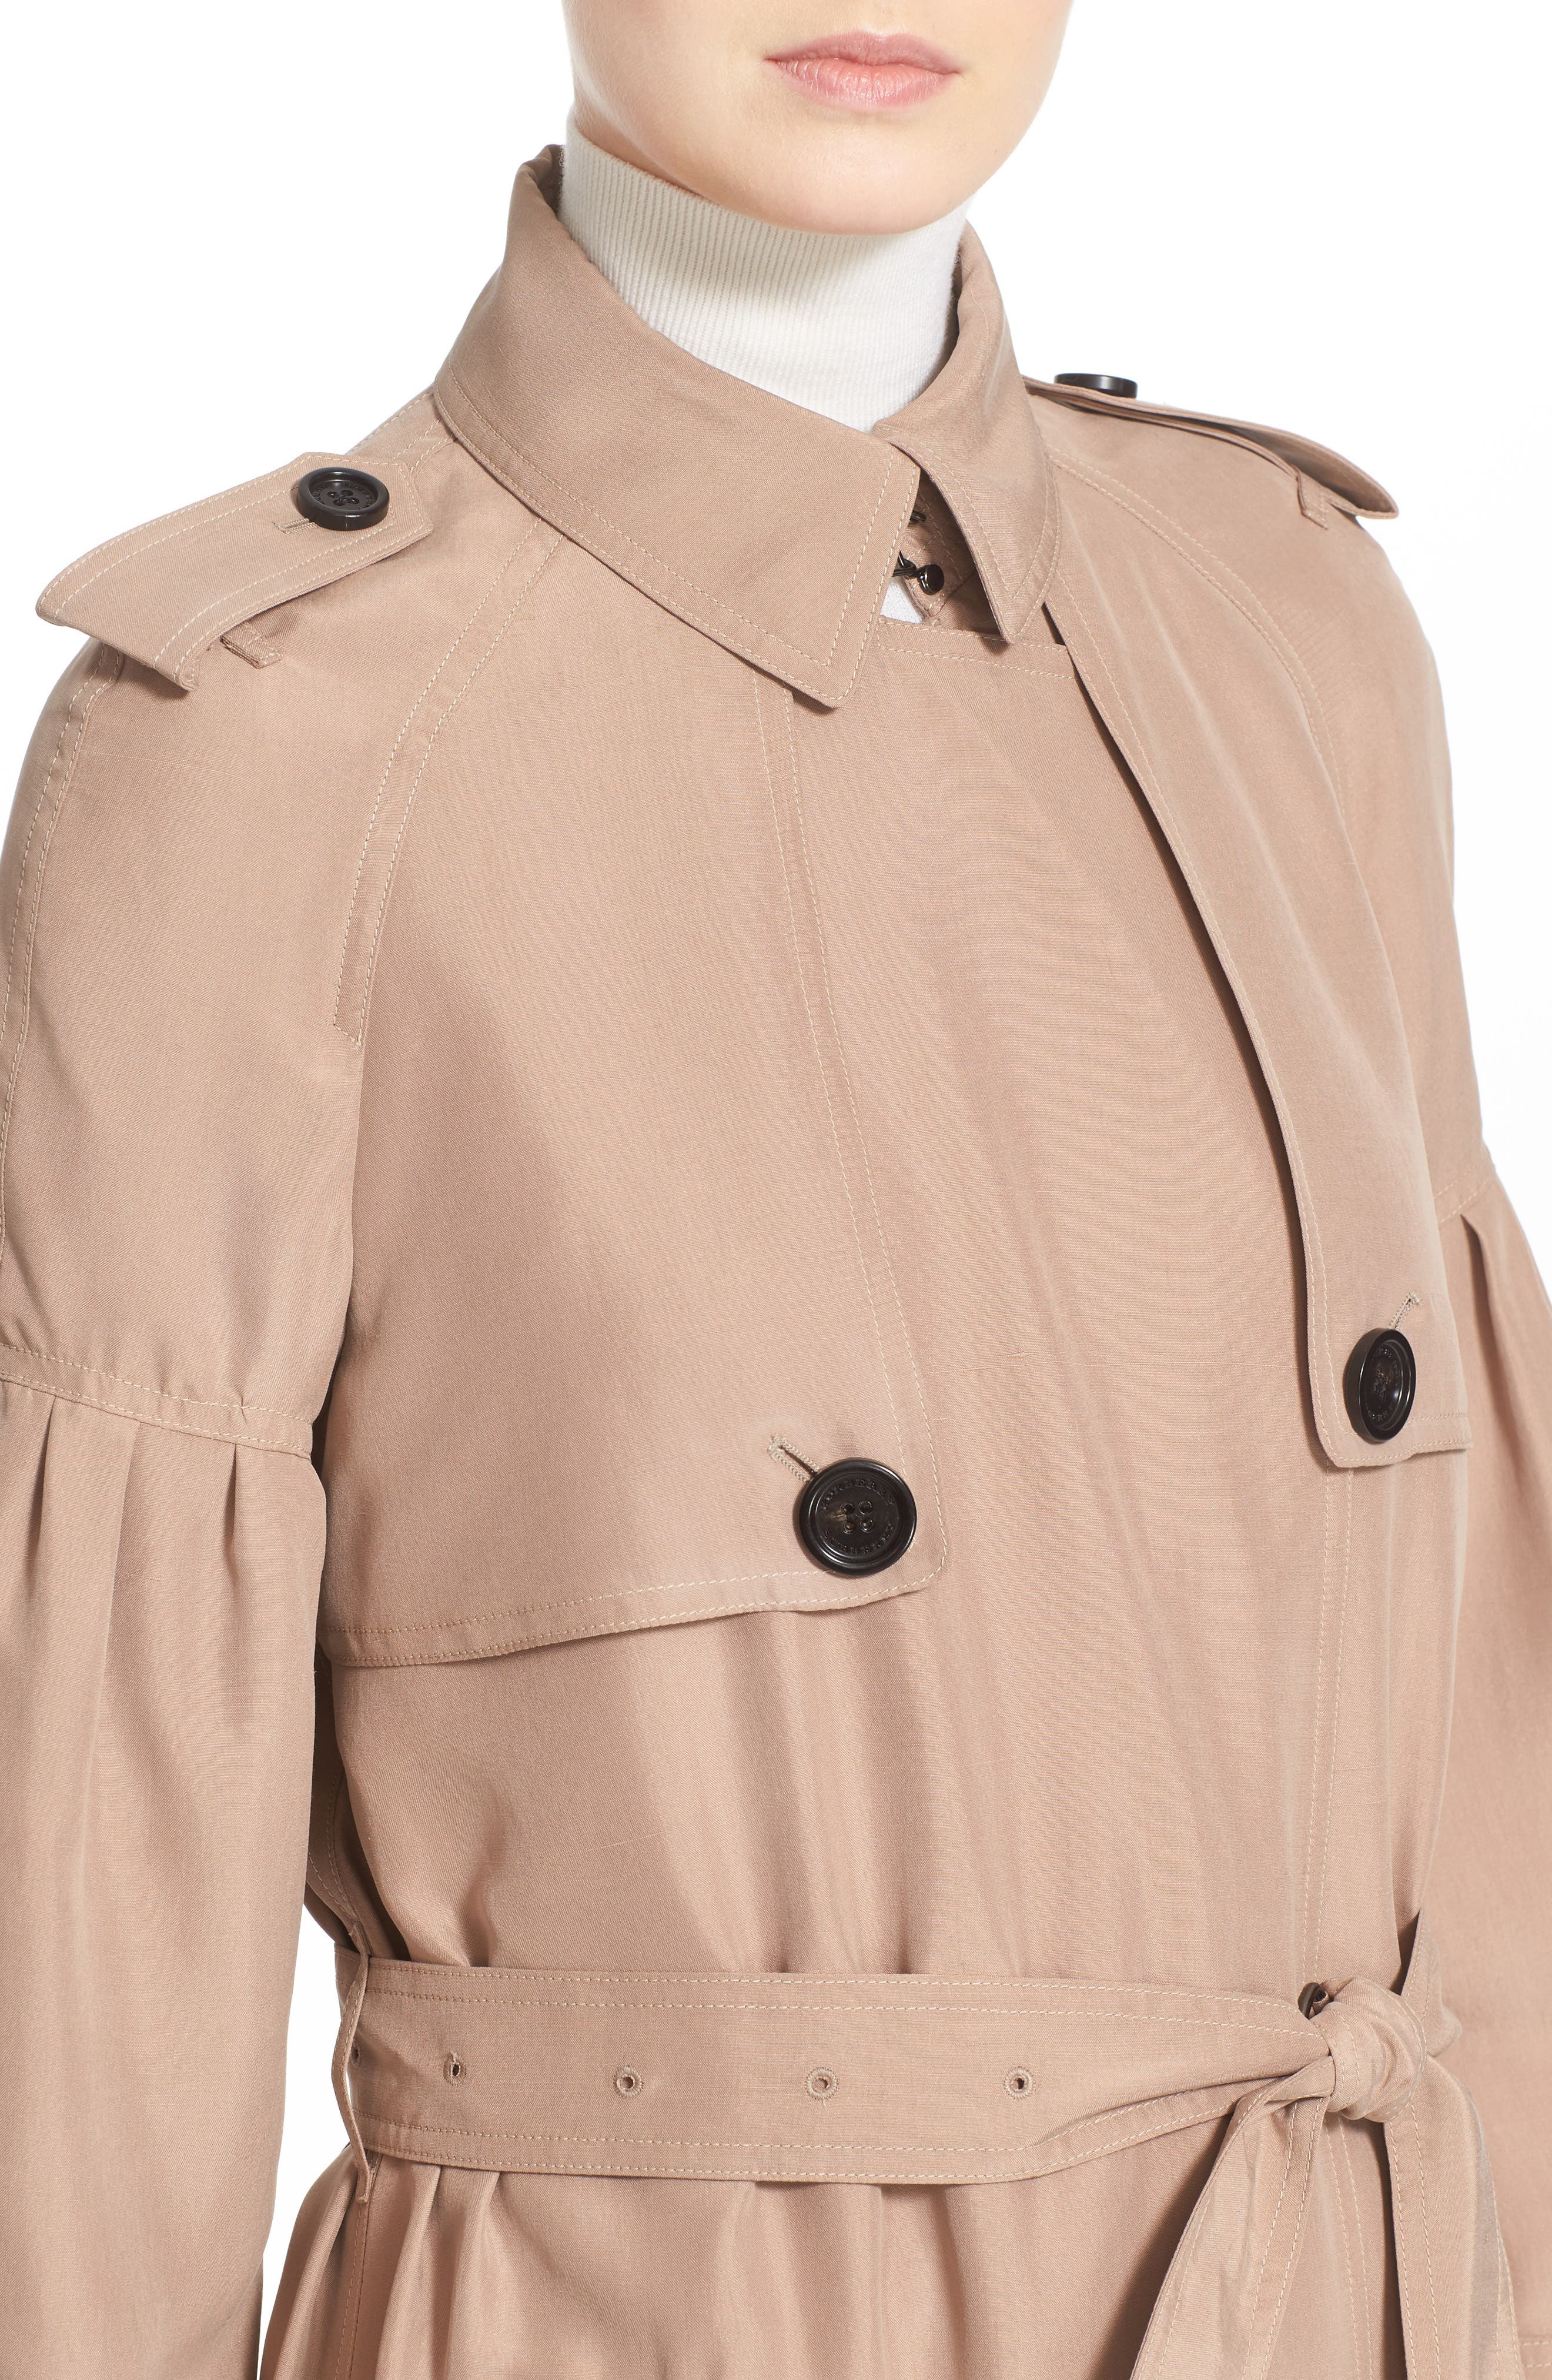 BURBERRY, Maythorne Mulberry Silk Trench, Alternate thumbnail 5, color, 250